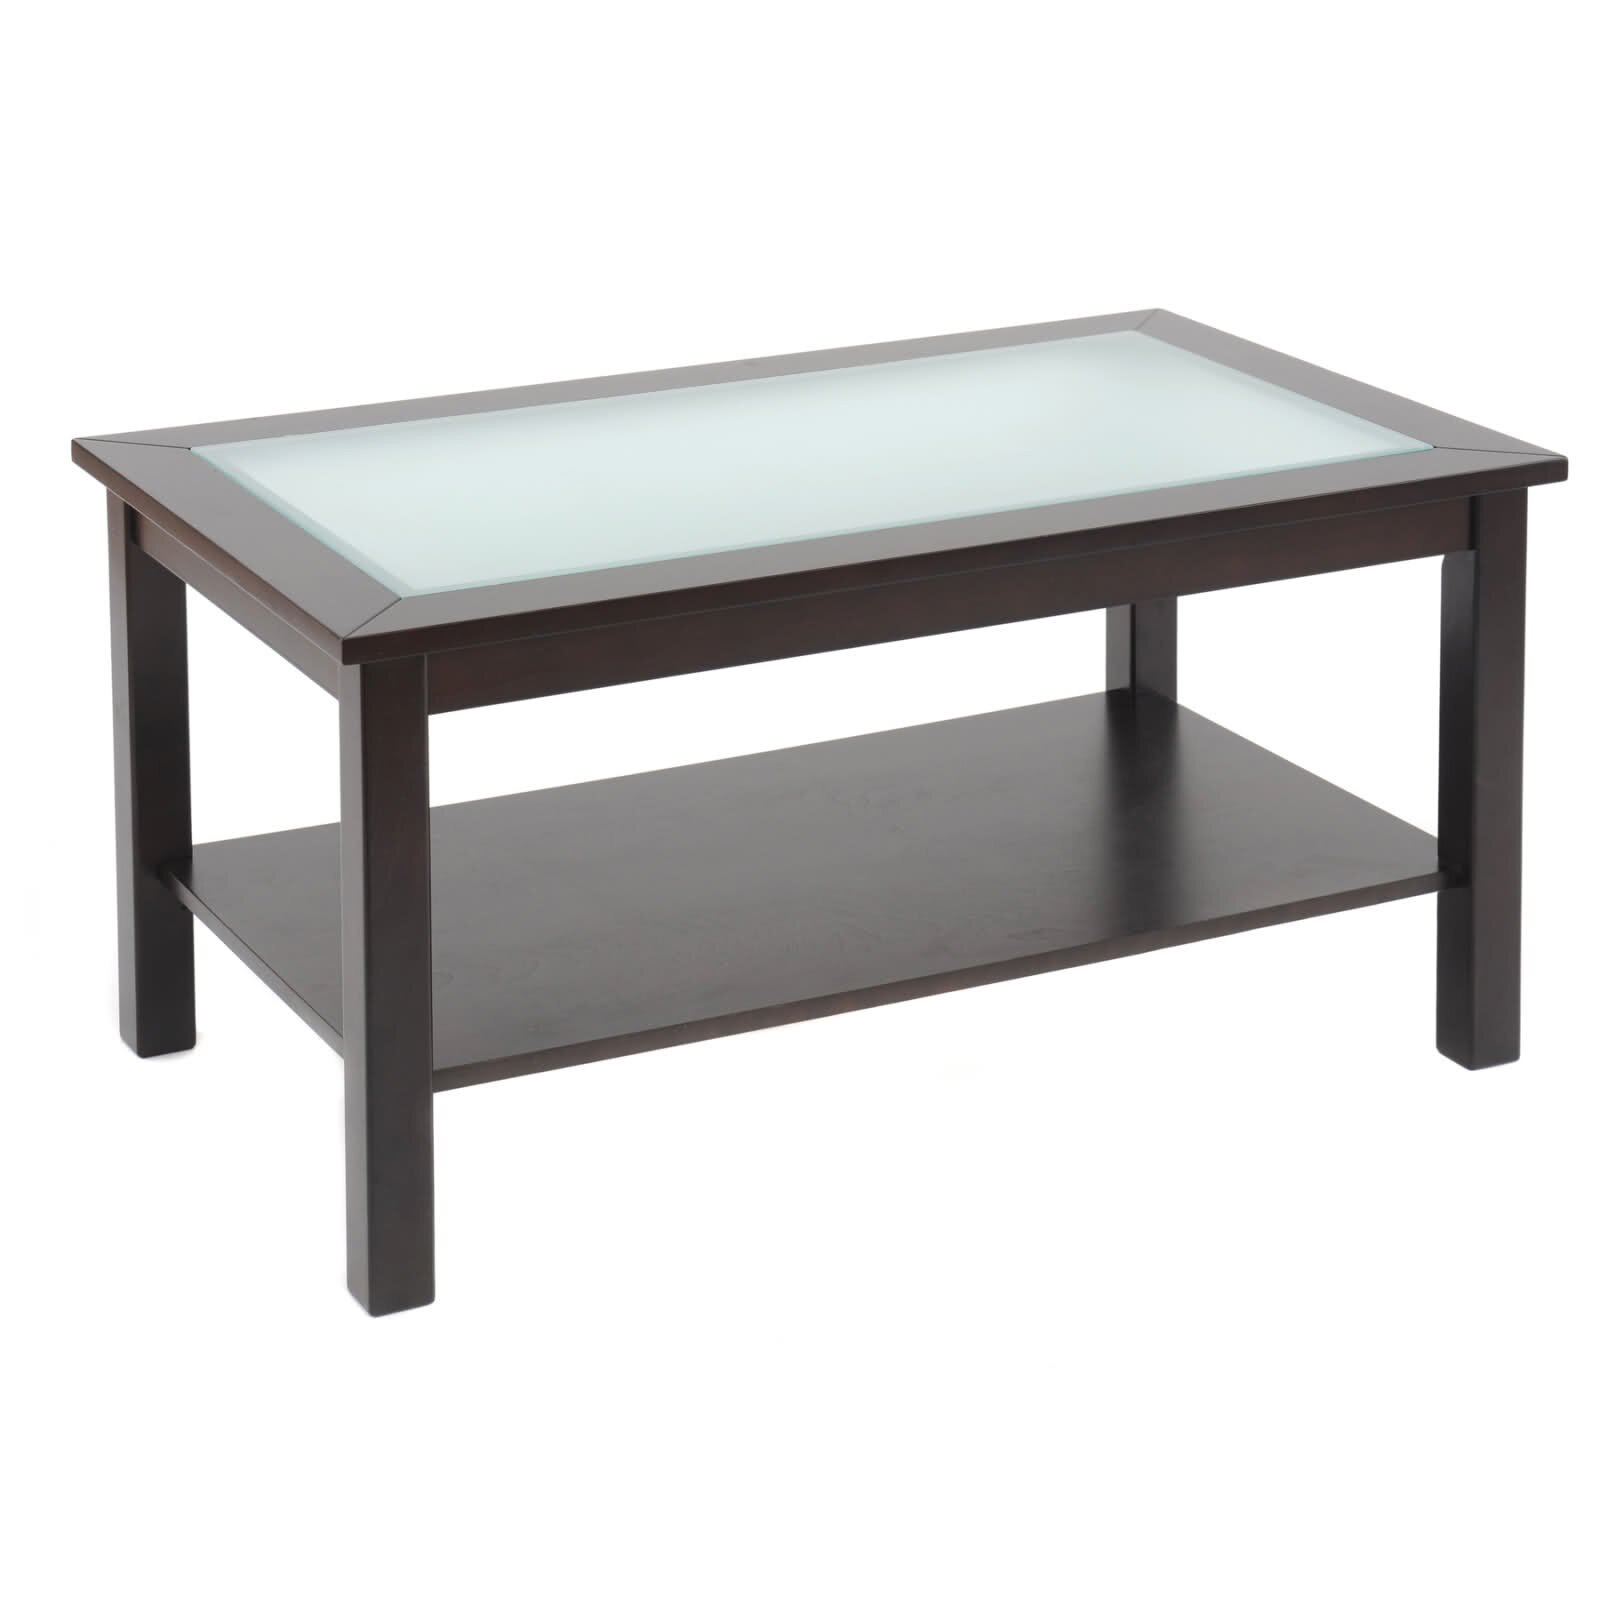 Kidney Shaped Glass Top Coffee Table Maple Coffee Tables Youll Love Wayfair